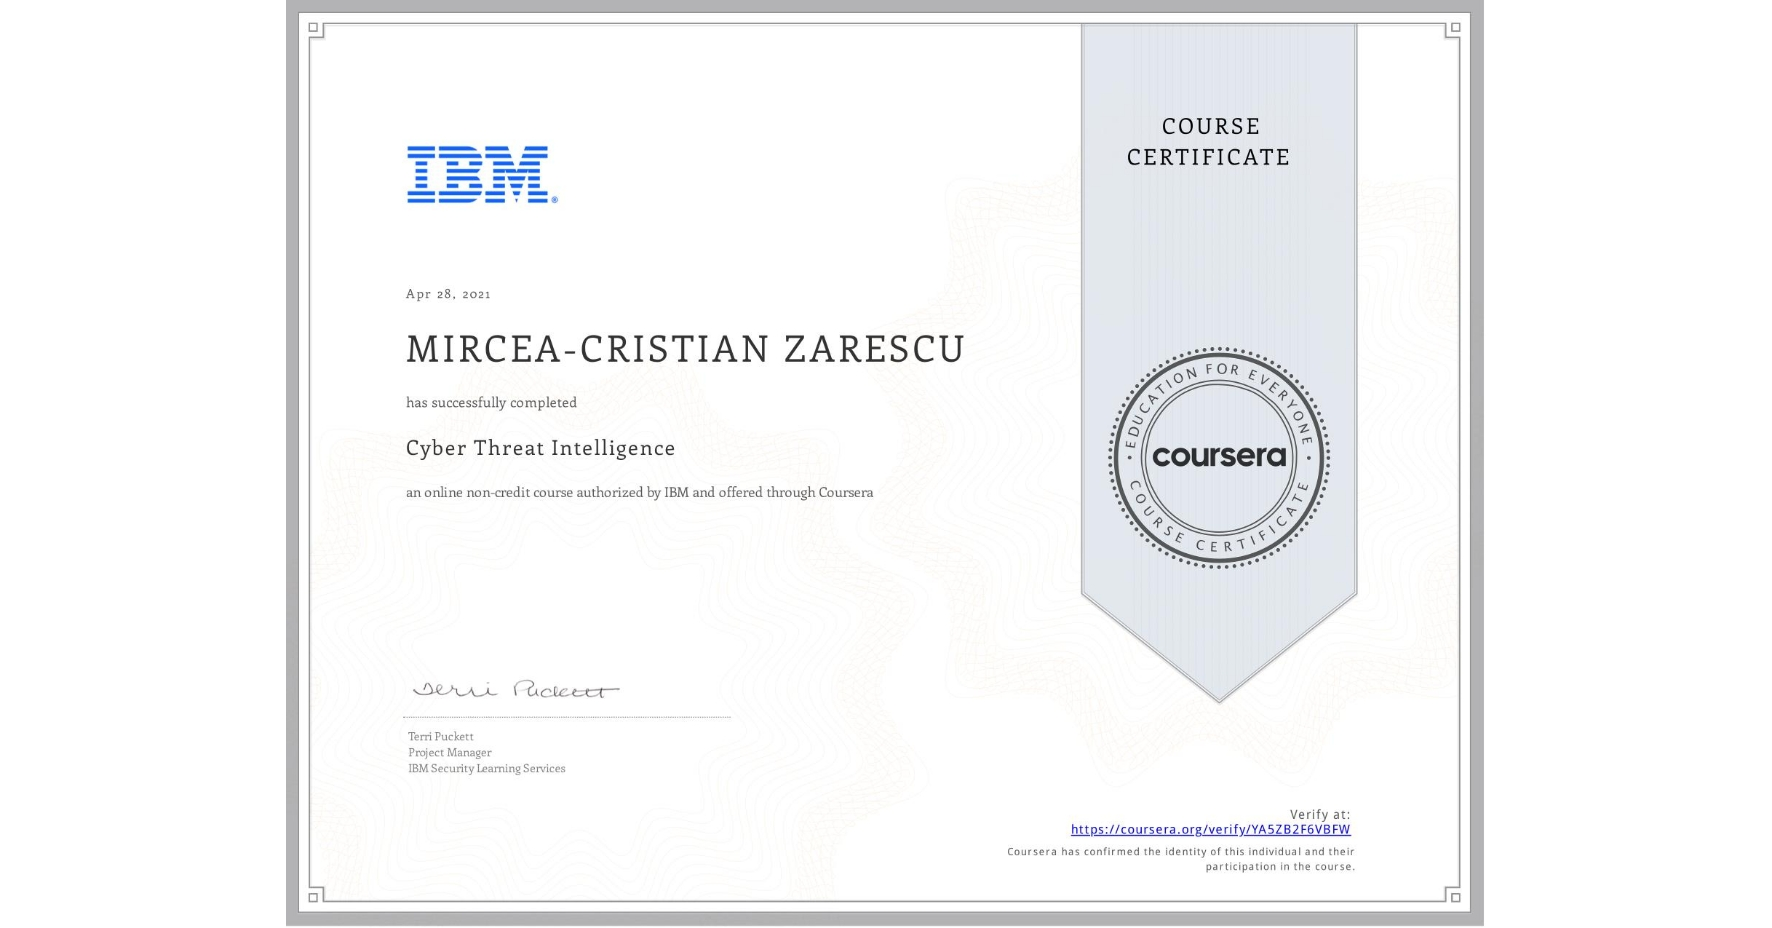 View certificate for MIRCEA-CRISTIAN ZARESCU, Cyber Threat Intelligence, an online non-credit course authorized by IBM and offered through Coursera